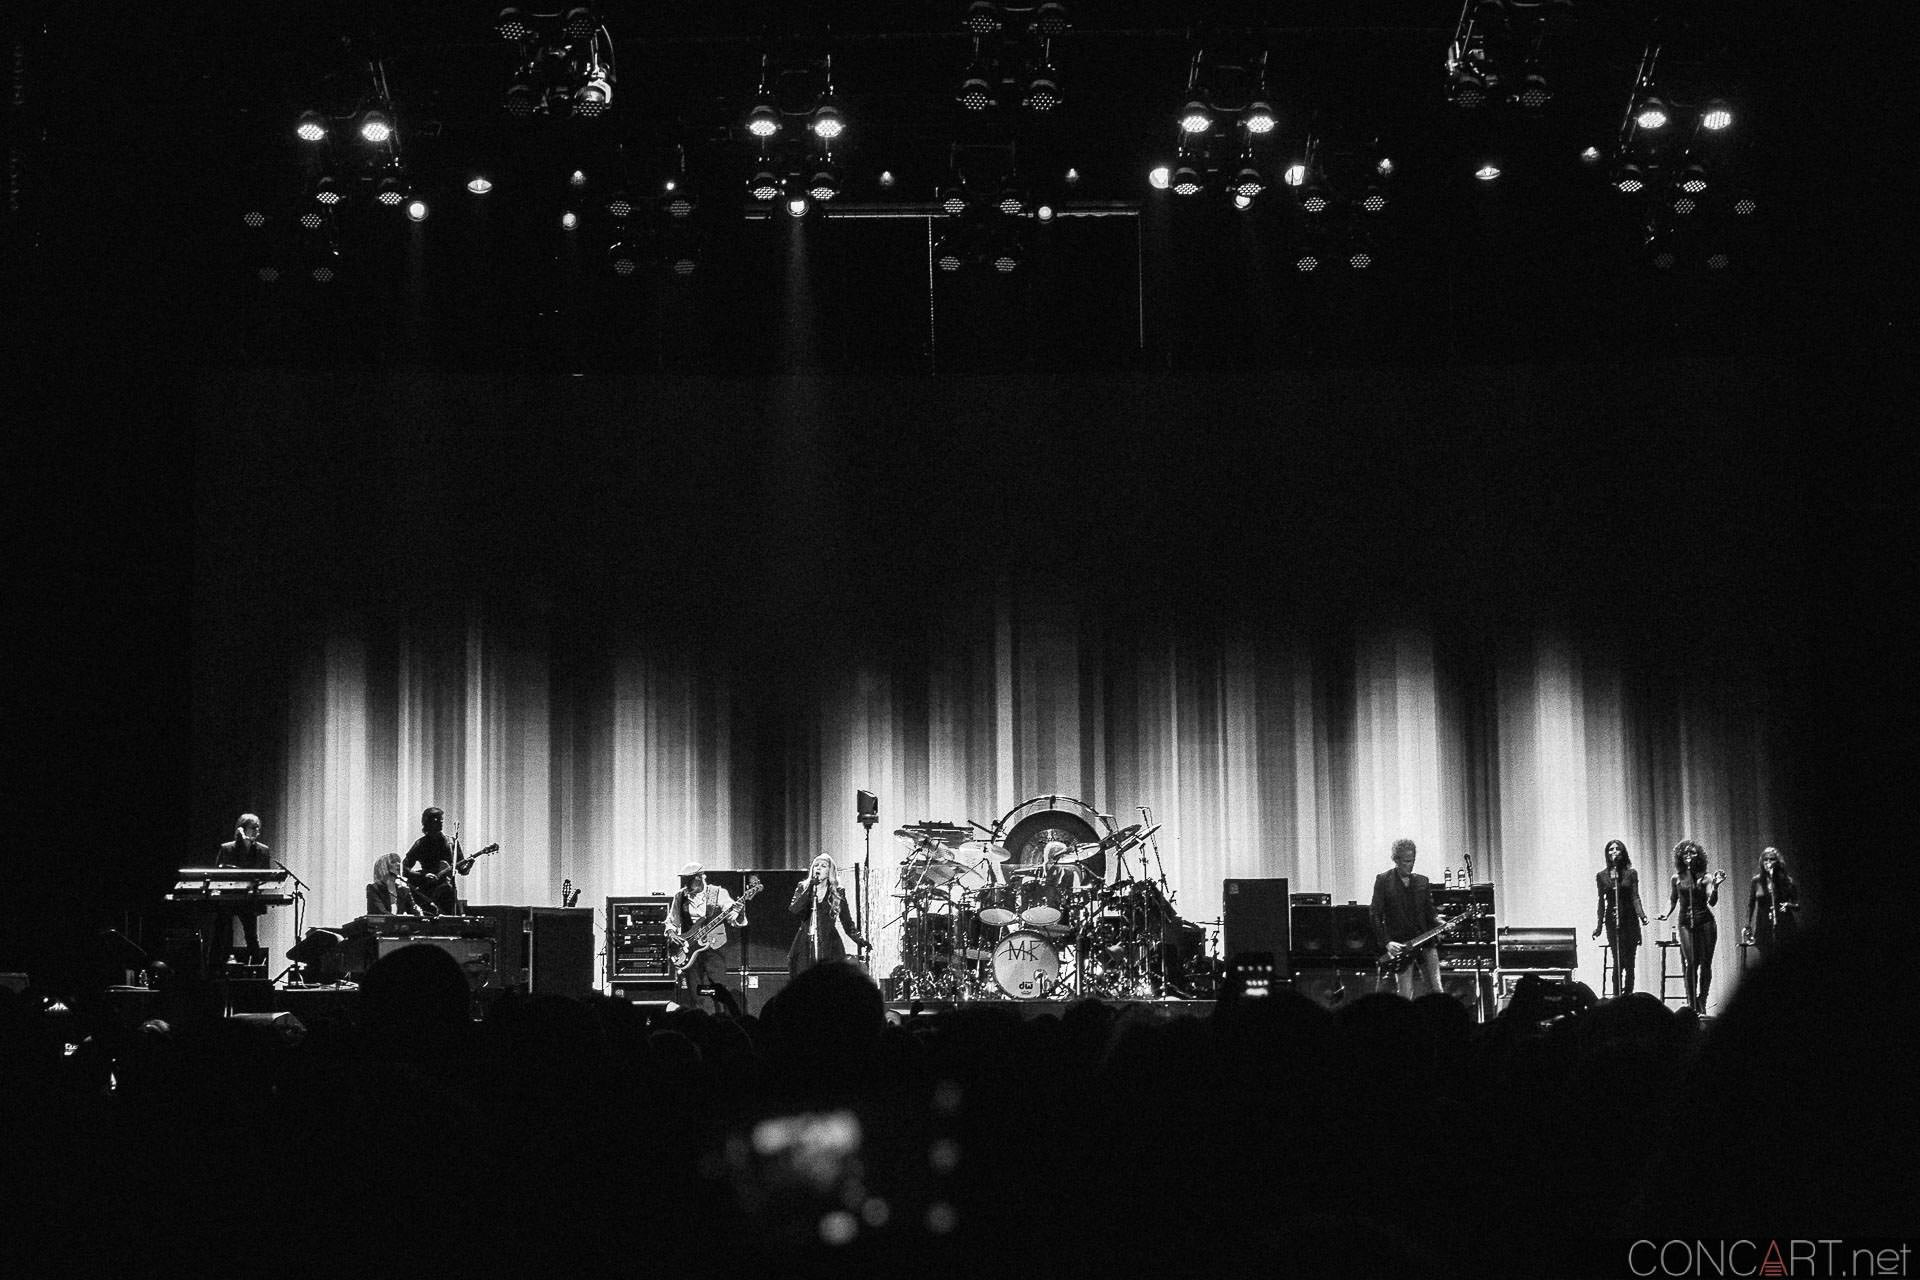 019-fleetwood-mac-live-indianapolis-bankers-life-fieldhouse-2014